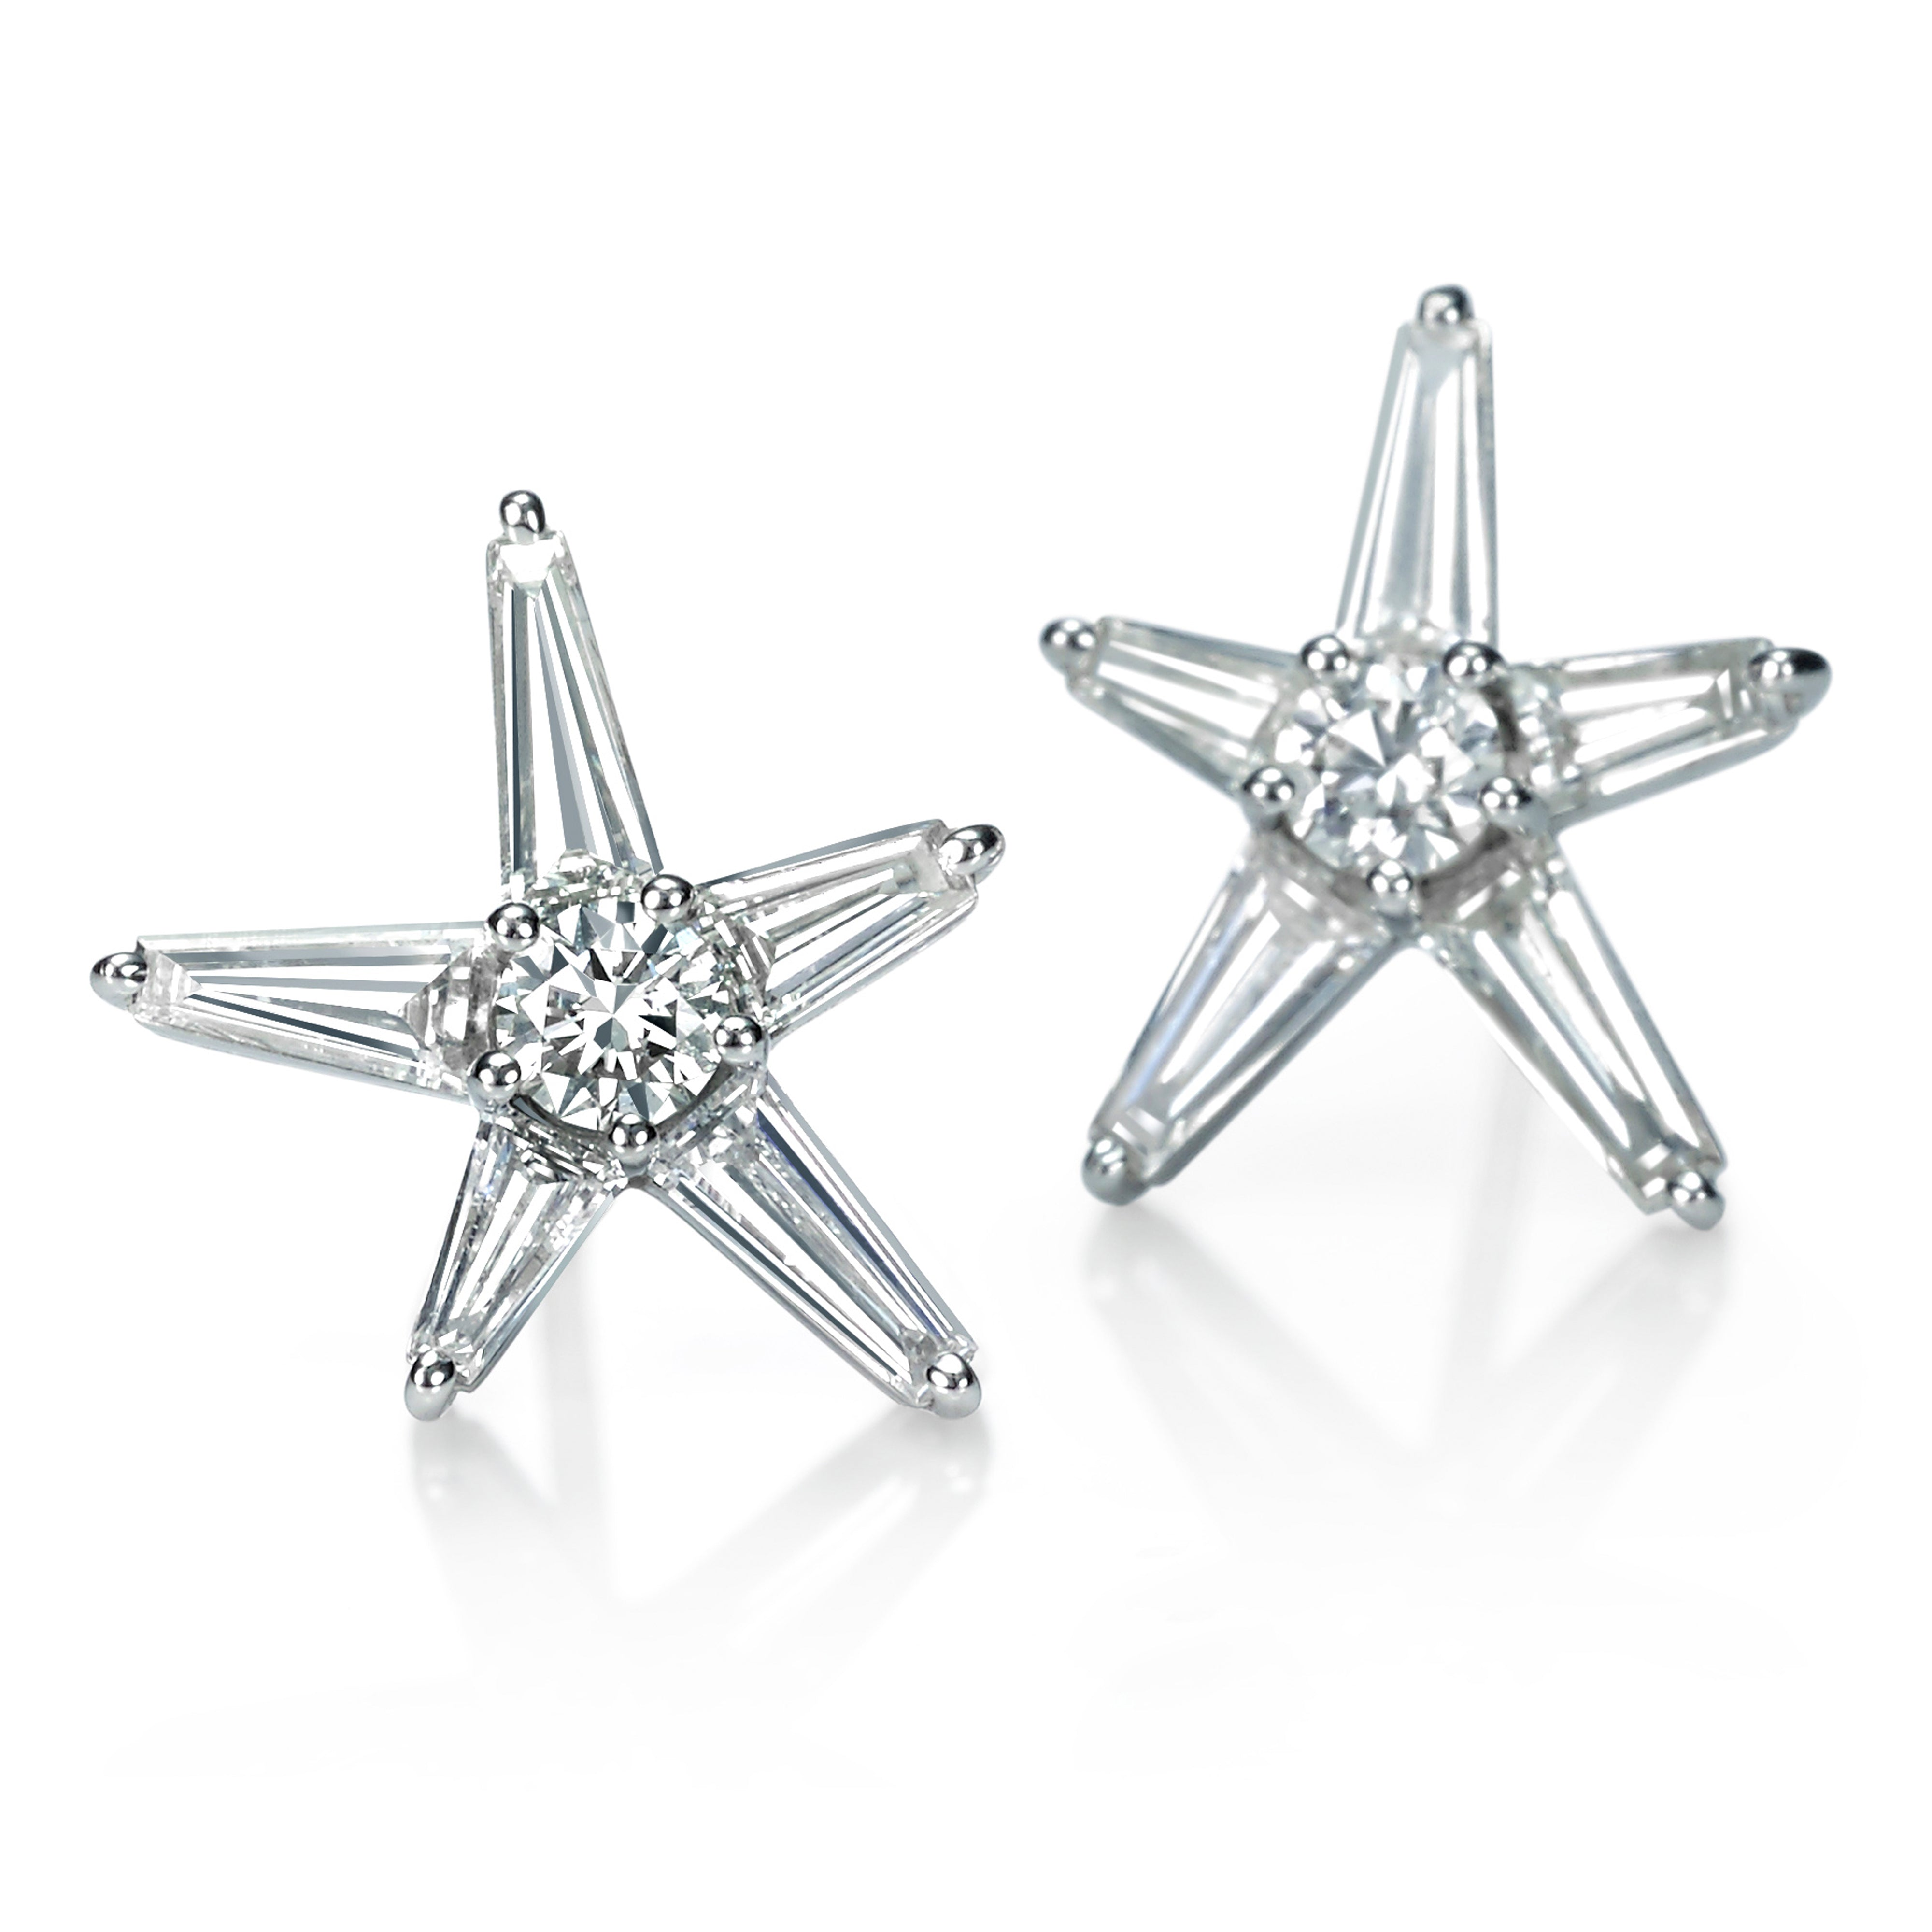 North Star Diamond Earring